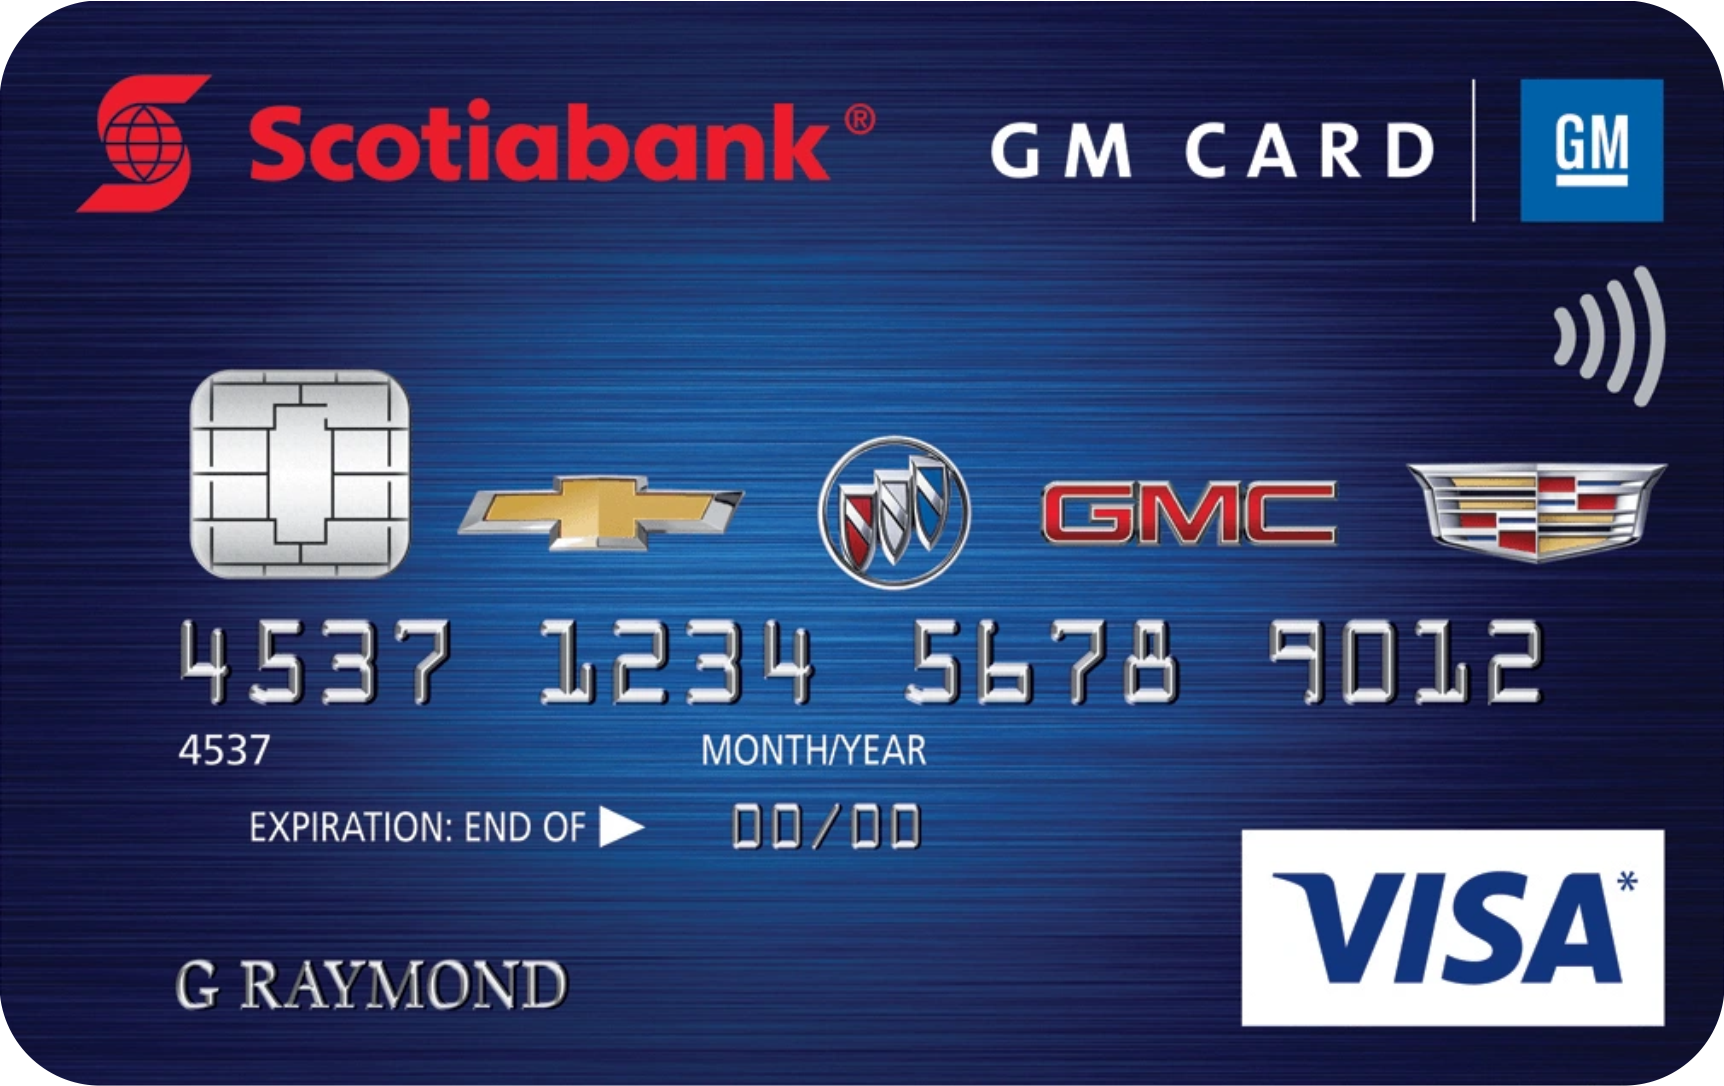 Scotiabank® GM® Visa card logo